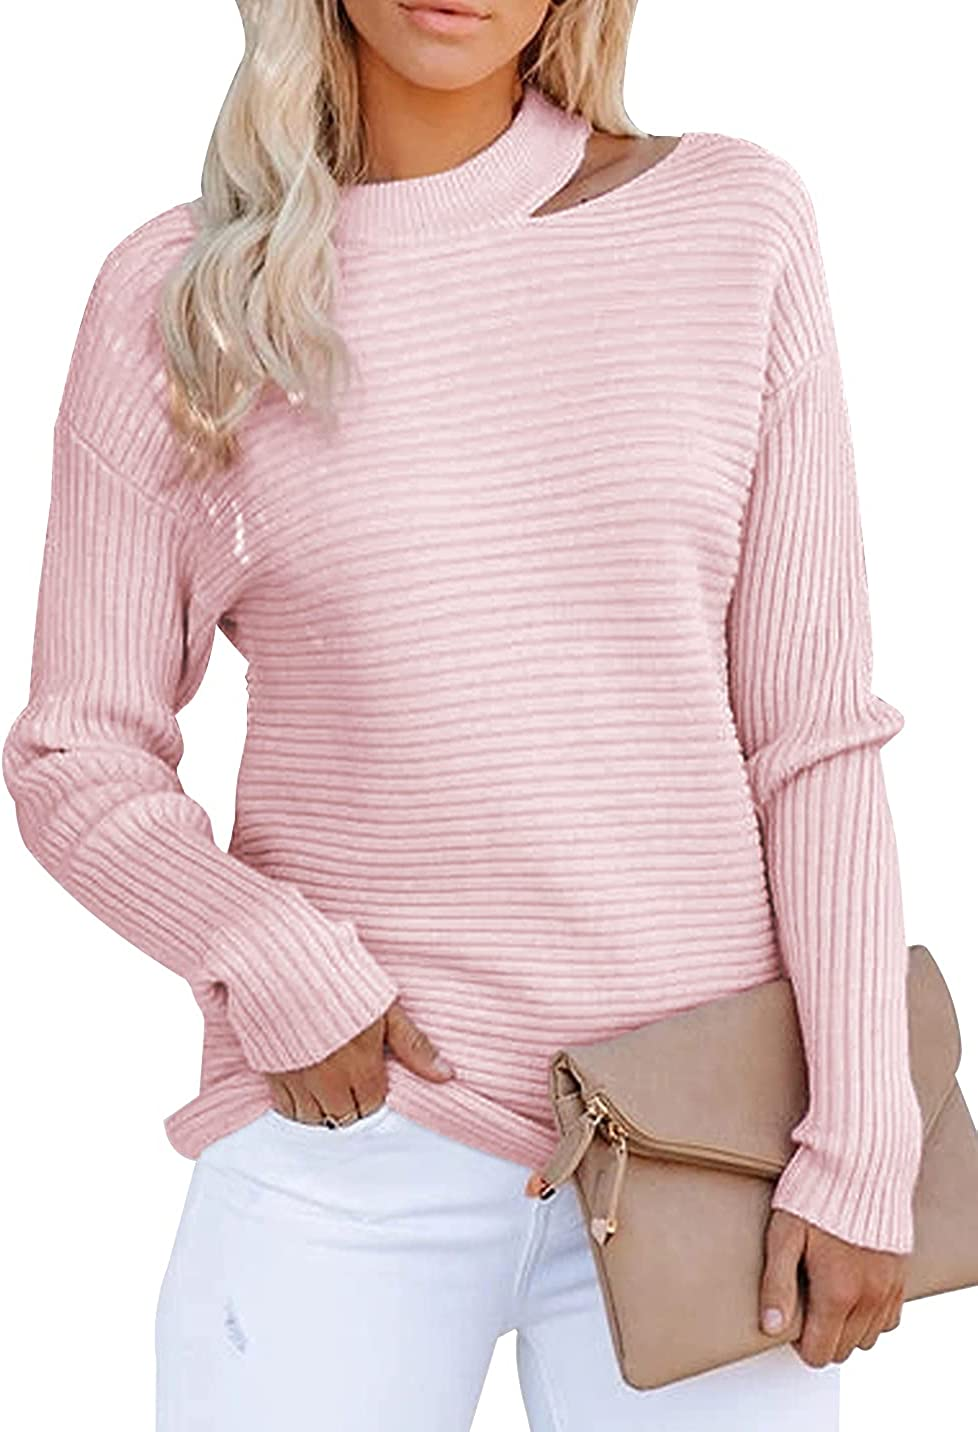 KIRUNDO 2021 Women's Sweaters Halter Neck Off Shoulder Long Sleeves Knit Sweater Loose Solid Pullovers Tops